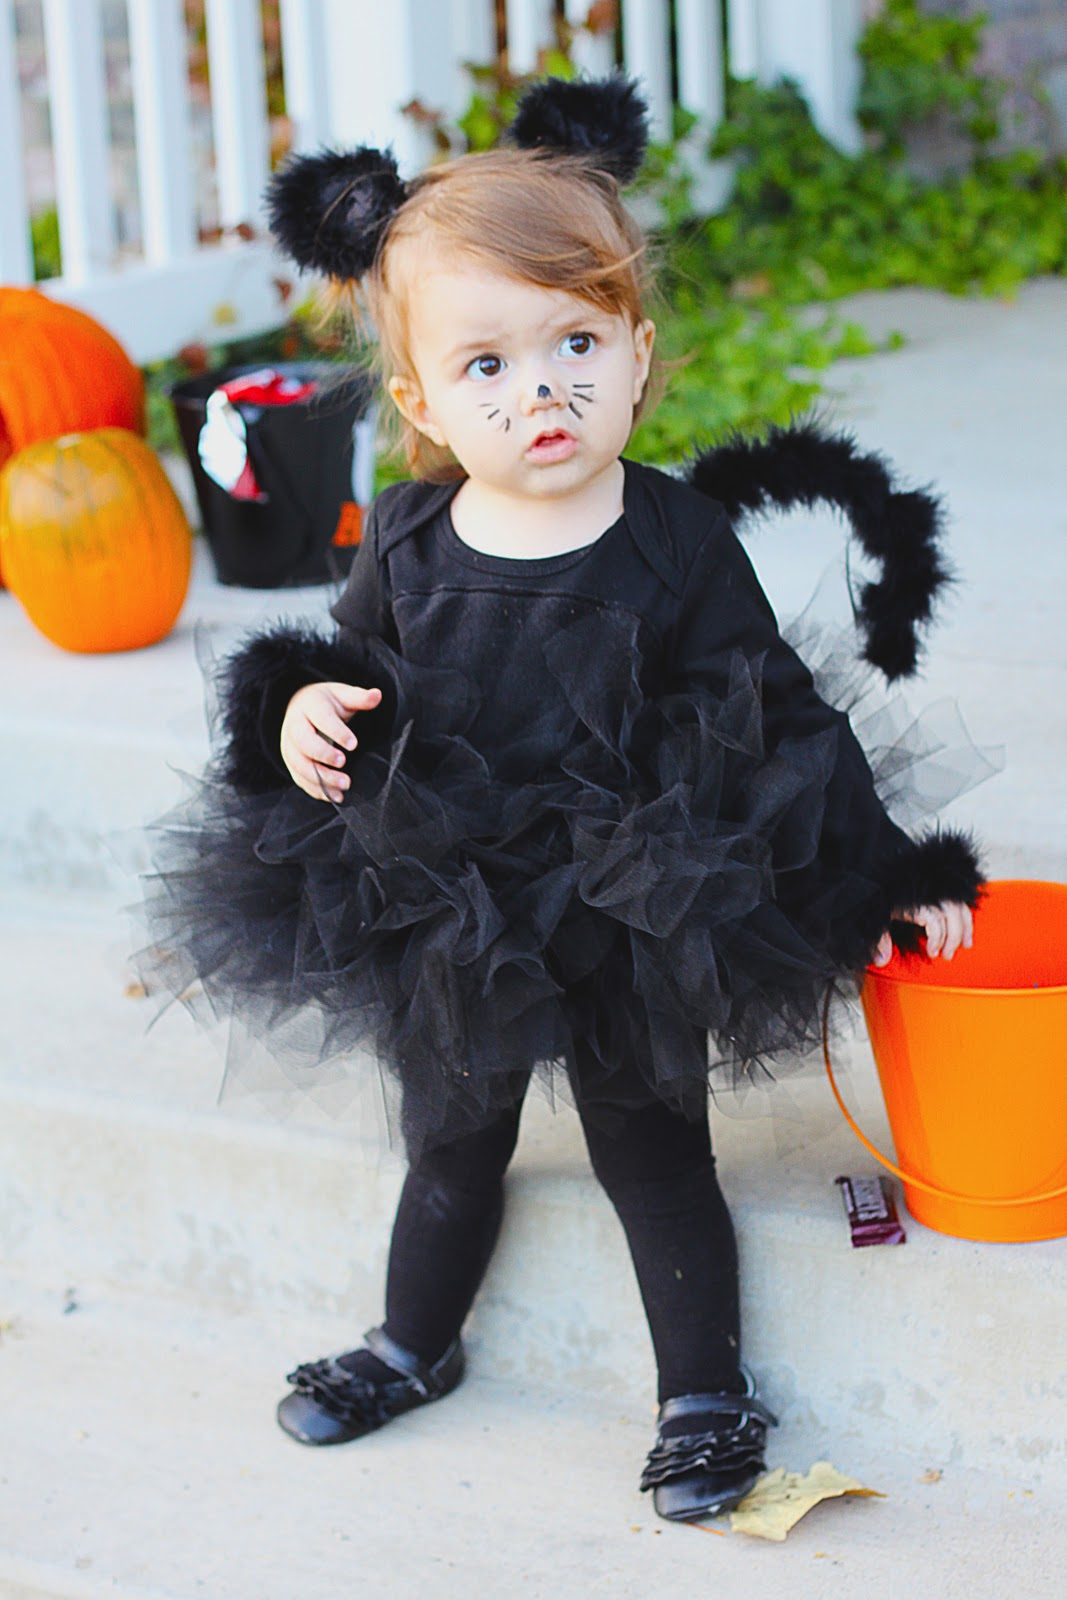 To add a tail to your black cat costume, cut apart a wire hanger, bend as desired, and wrap with a black feather boa, hot-gluing as you go. Tip: The makeup can be as minimal or as detailed as you like.